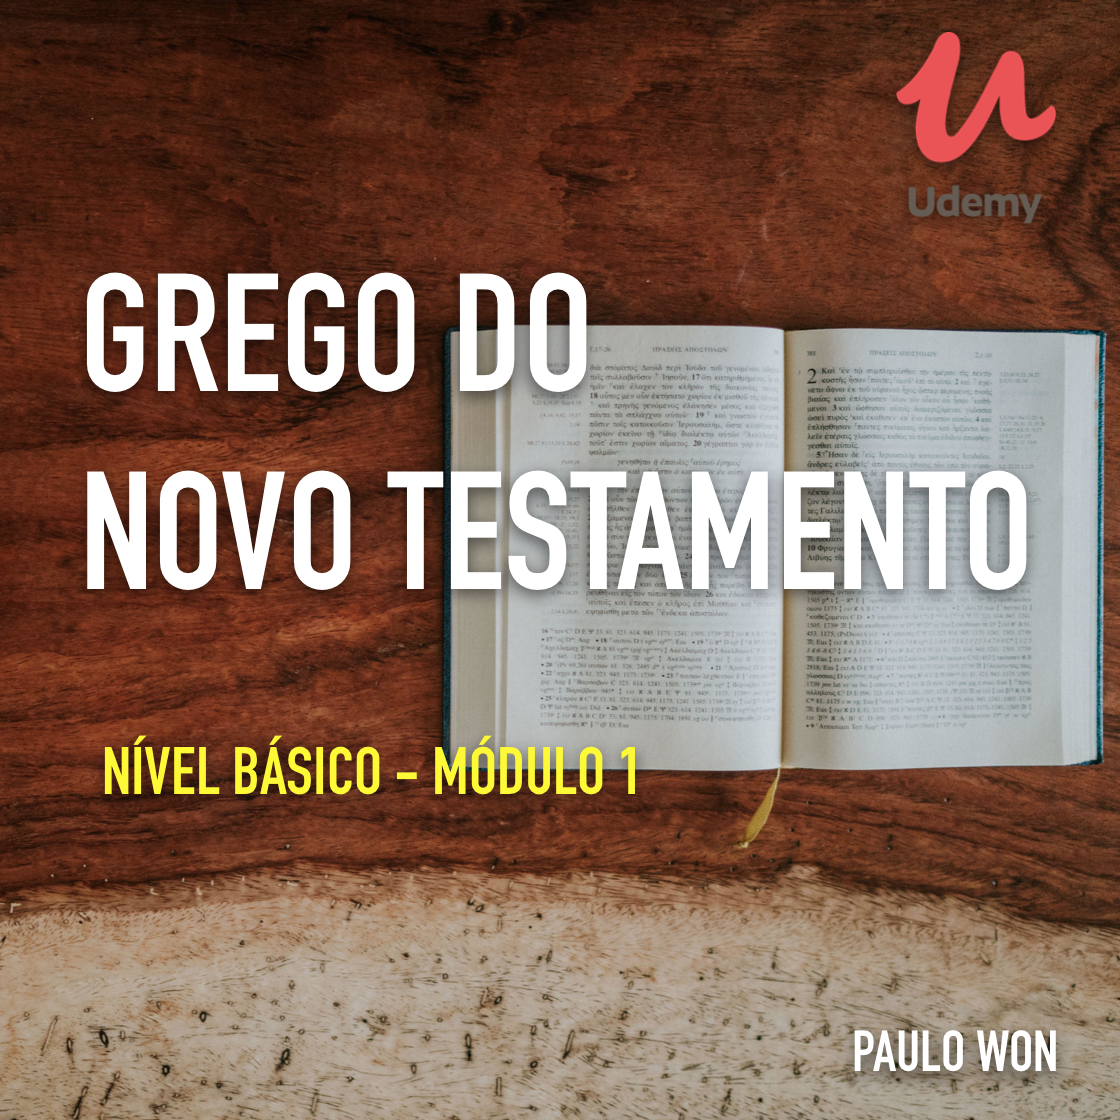 GREGO DO NT - BÁSICO 1 - PAULO WON.png